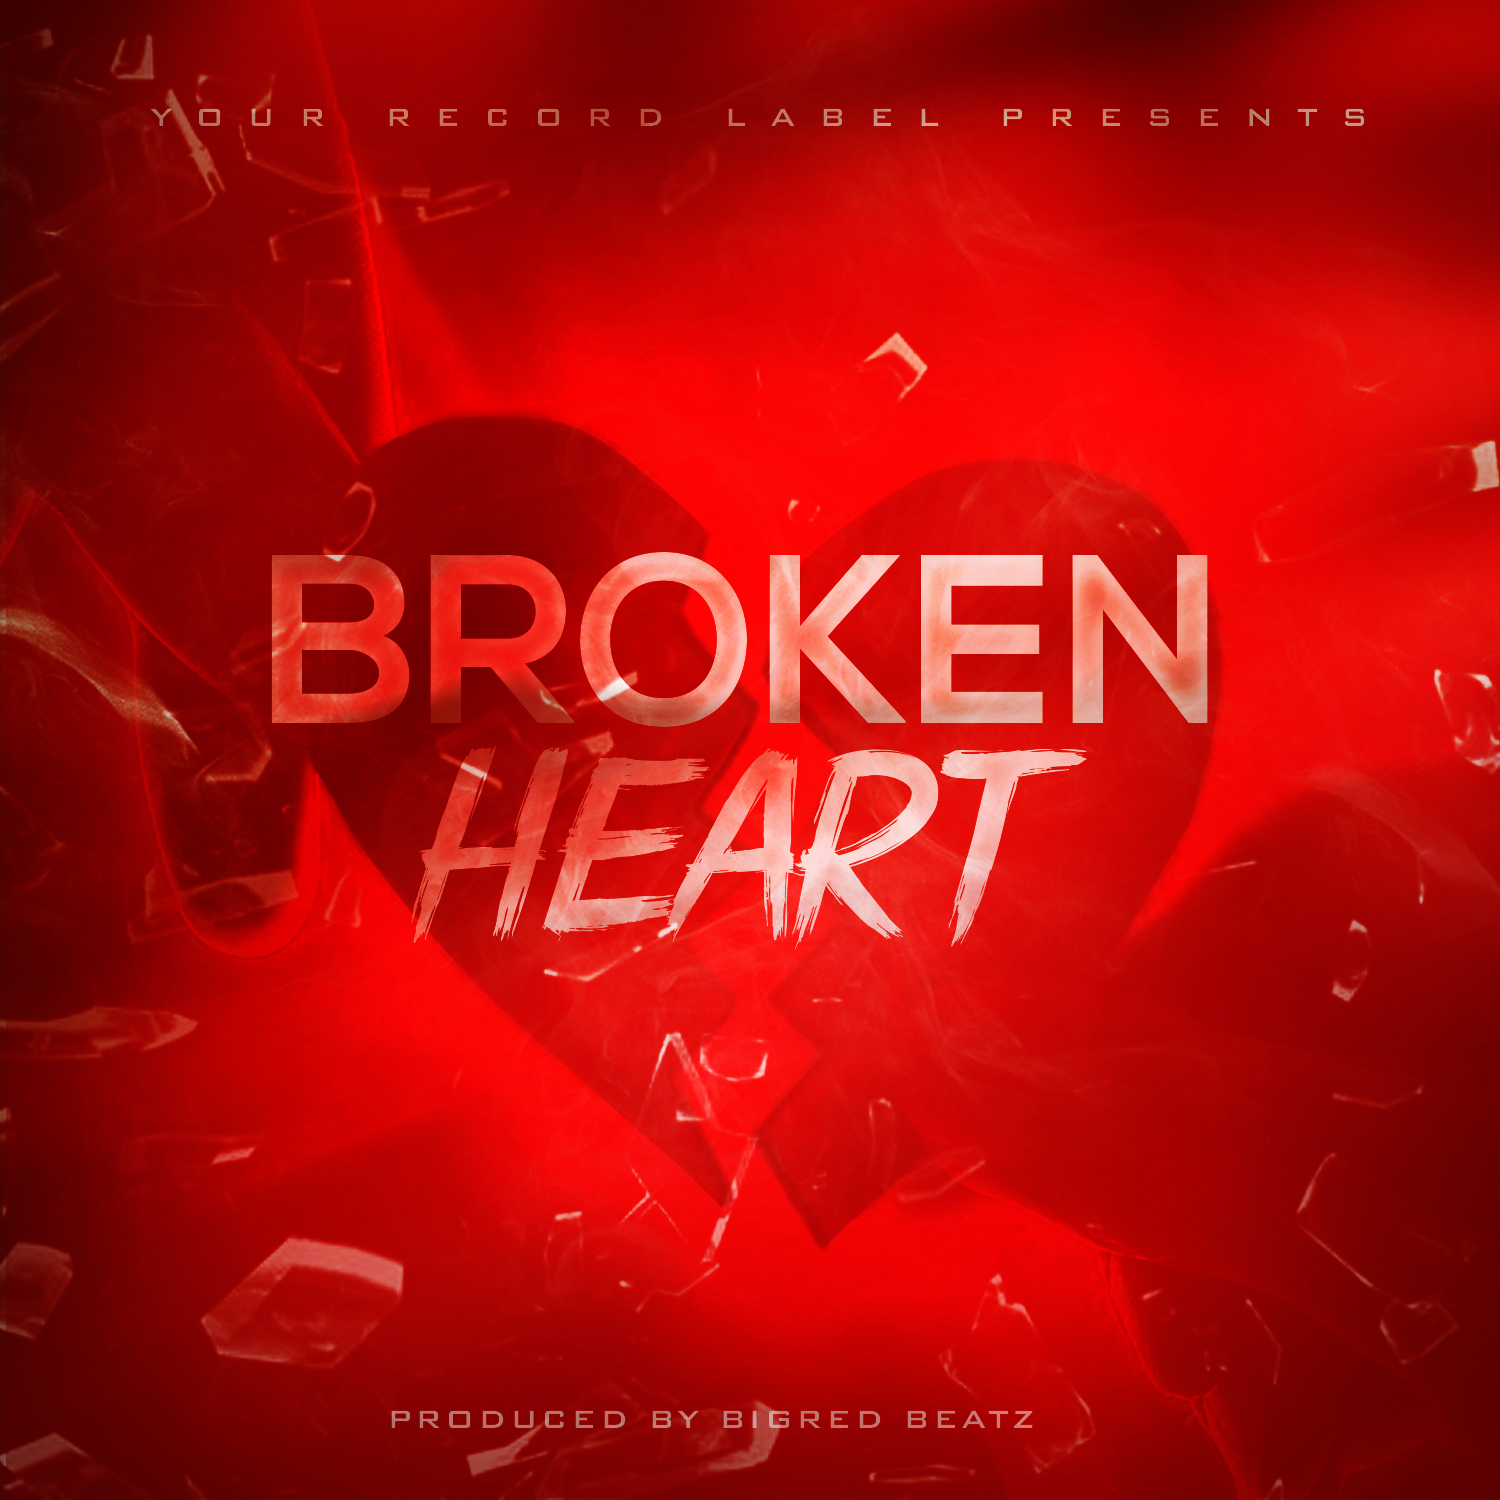 Broken hearts free album cover template for Free mixtape covers templates